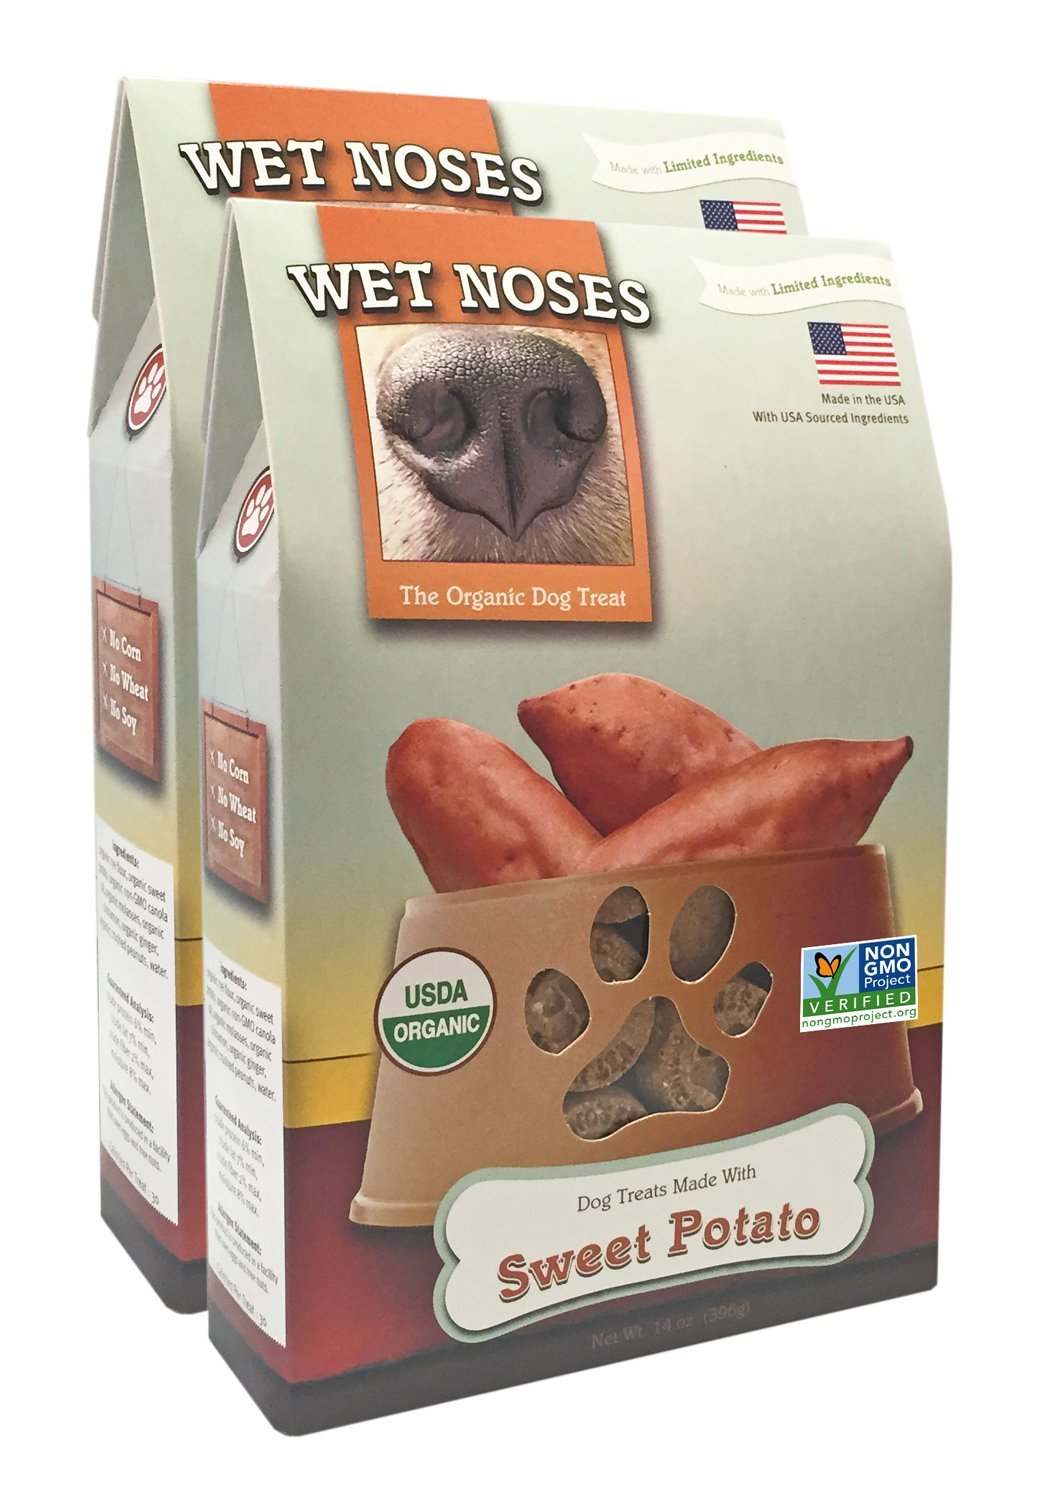 2-Pack Wet Noses All Natural Dog Treats, Made in USA, 100% USDA Certified Organic, Non-GMO Project Verified, 14 Oz Box, Sweet Potato Flavor, 2-Pack